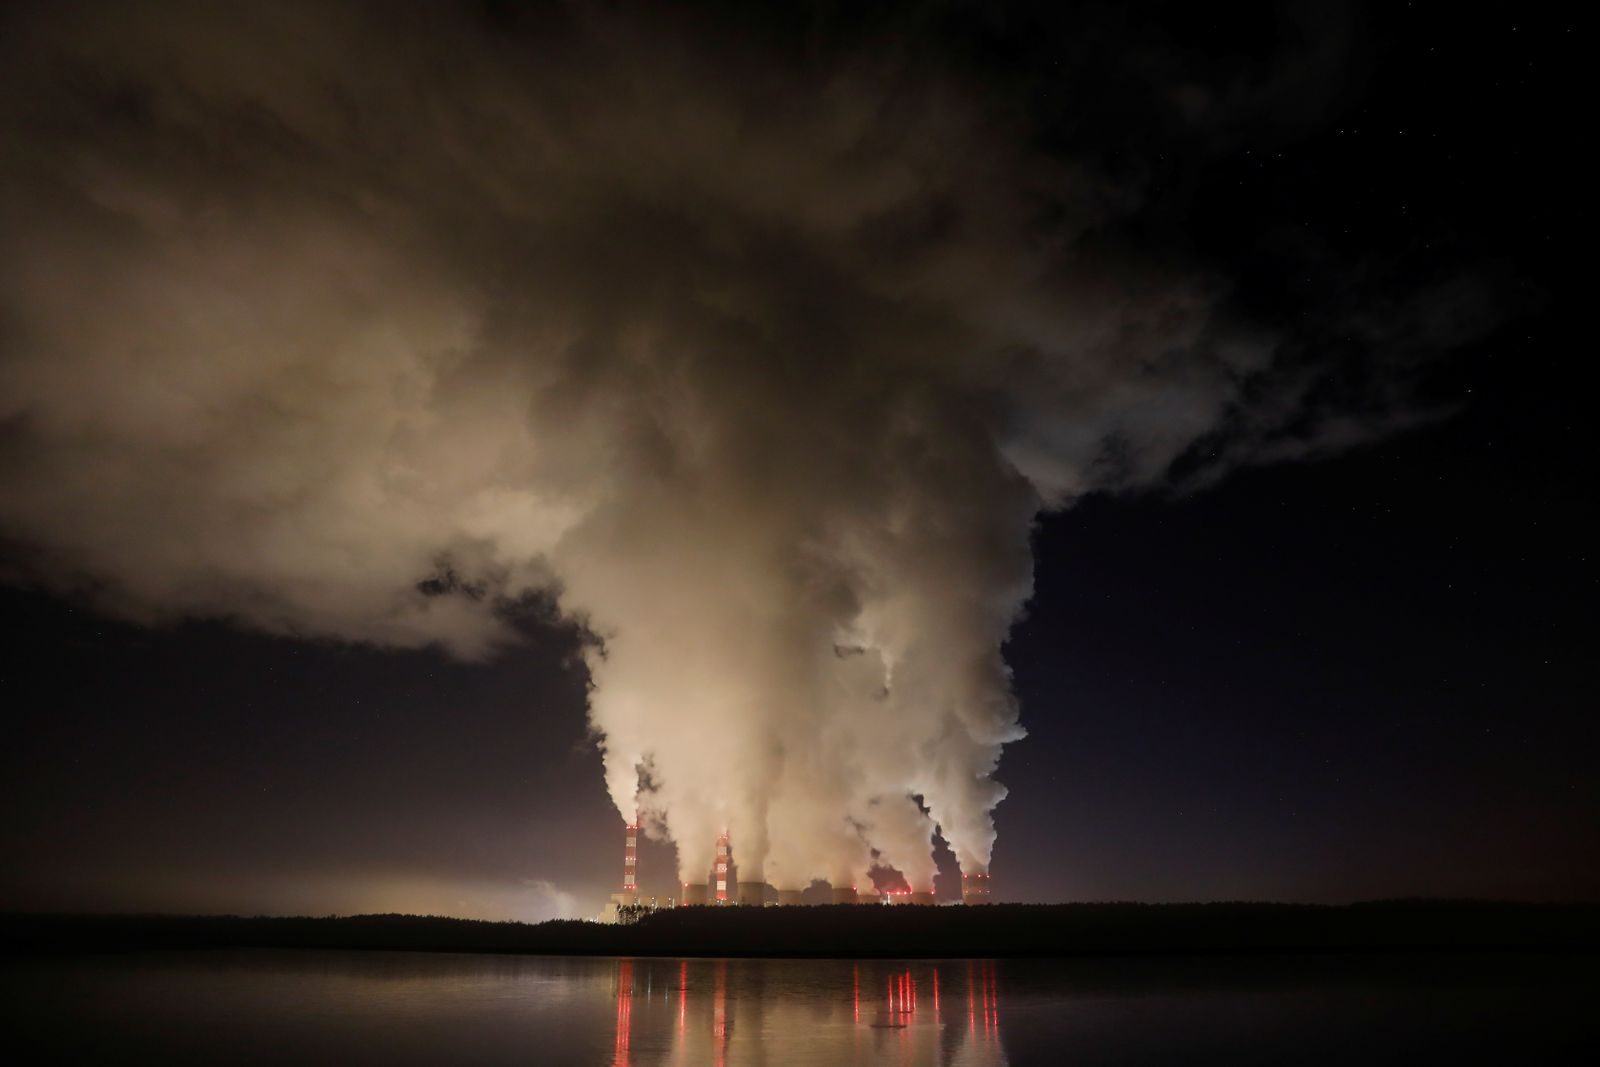 Smoke and steam billows from Belchatow Power Station, Europe's largest coal-fired power plant operated by PGE Group, at night near Belchatow,